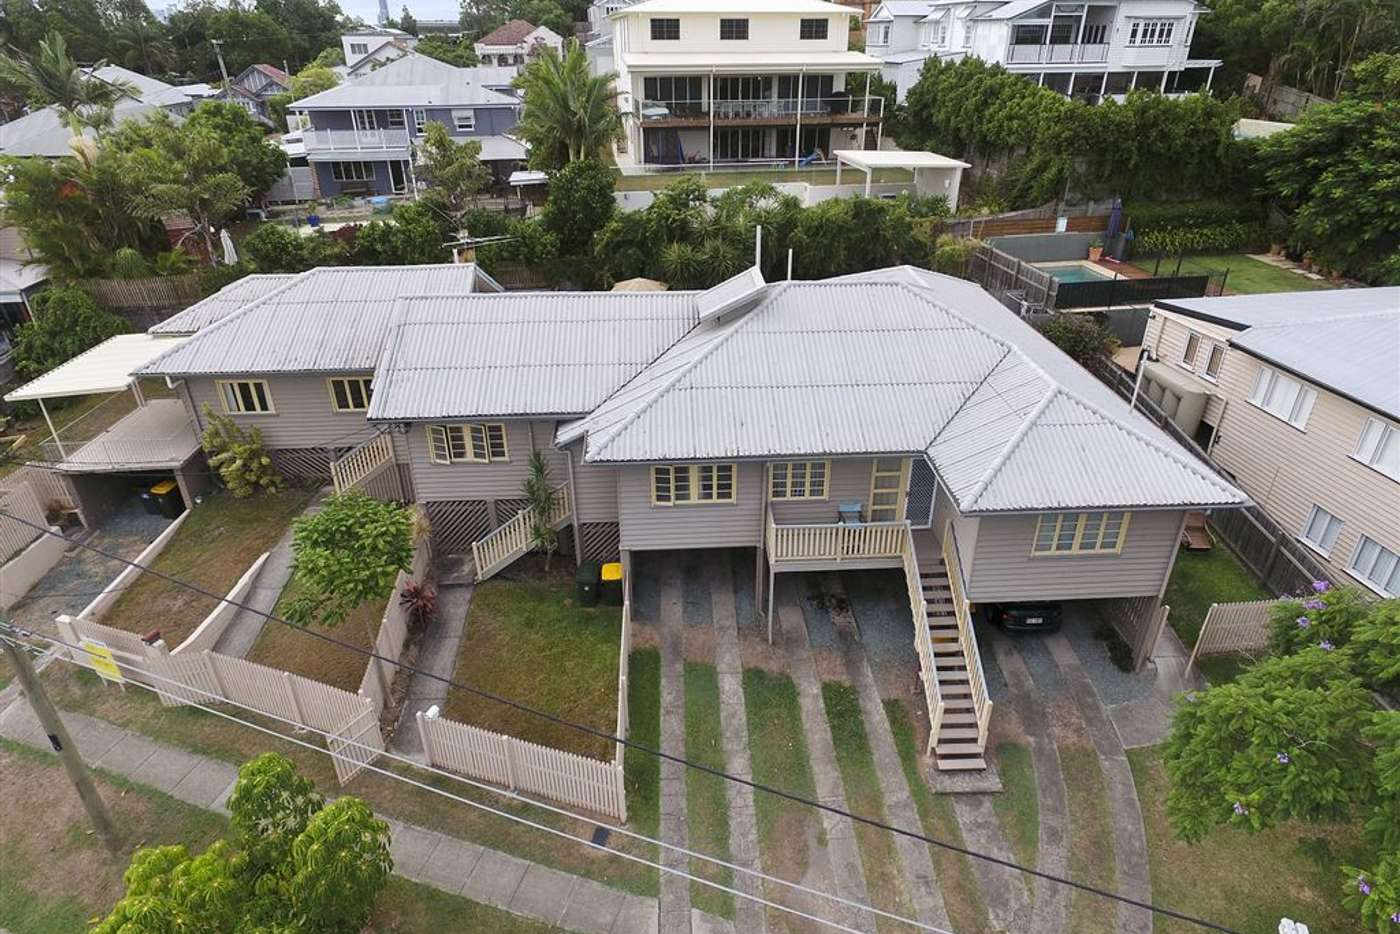 Seventh view of Homely blockOfUnits listing, 83 Mackay Street, Coorparoo QLD 4151